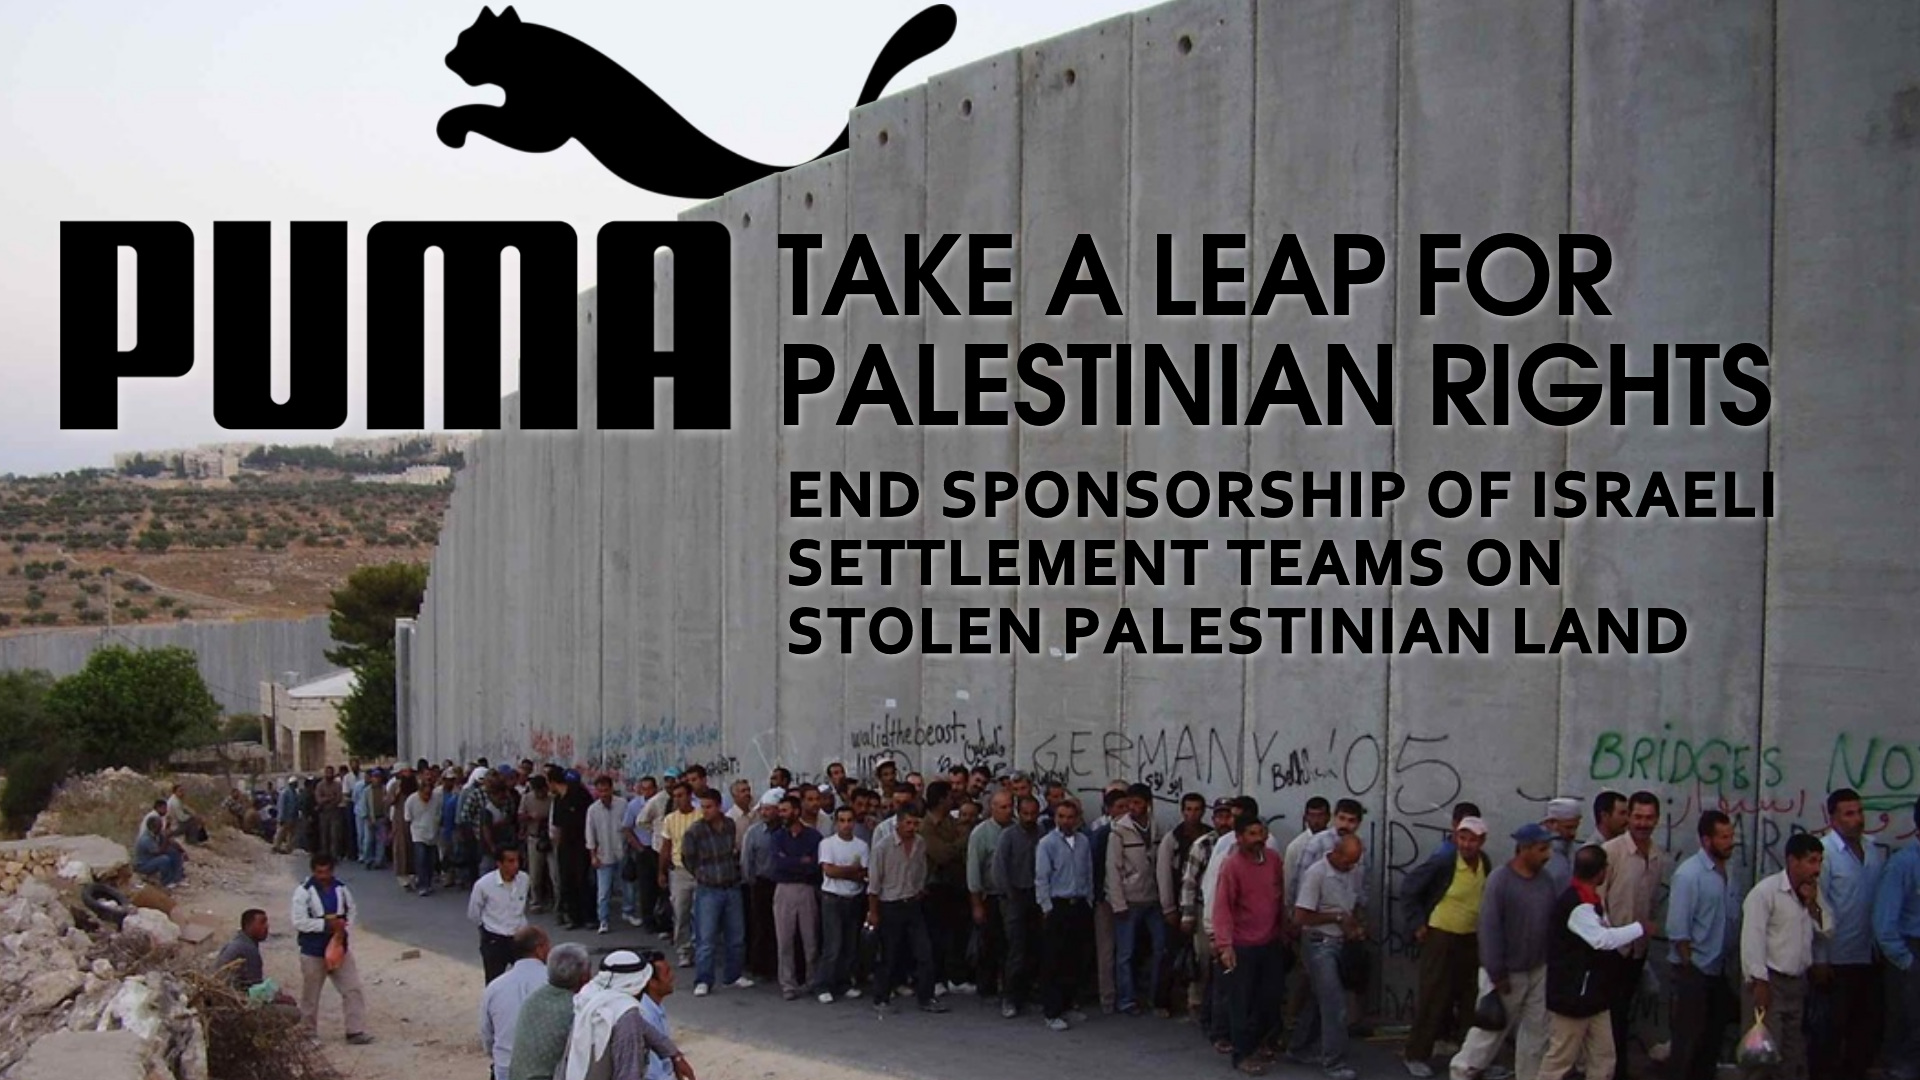 Puma, end sponsorship of Israeli settlement teams on stolen Palestinian land